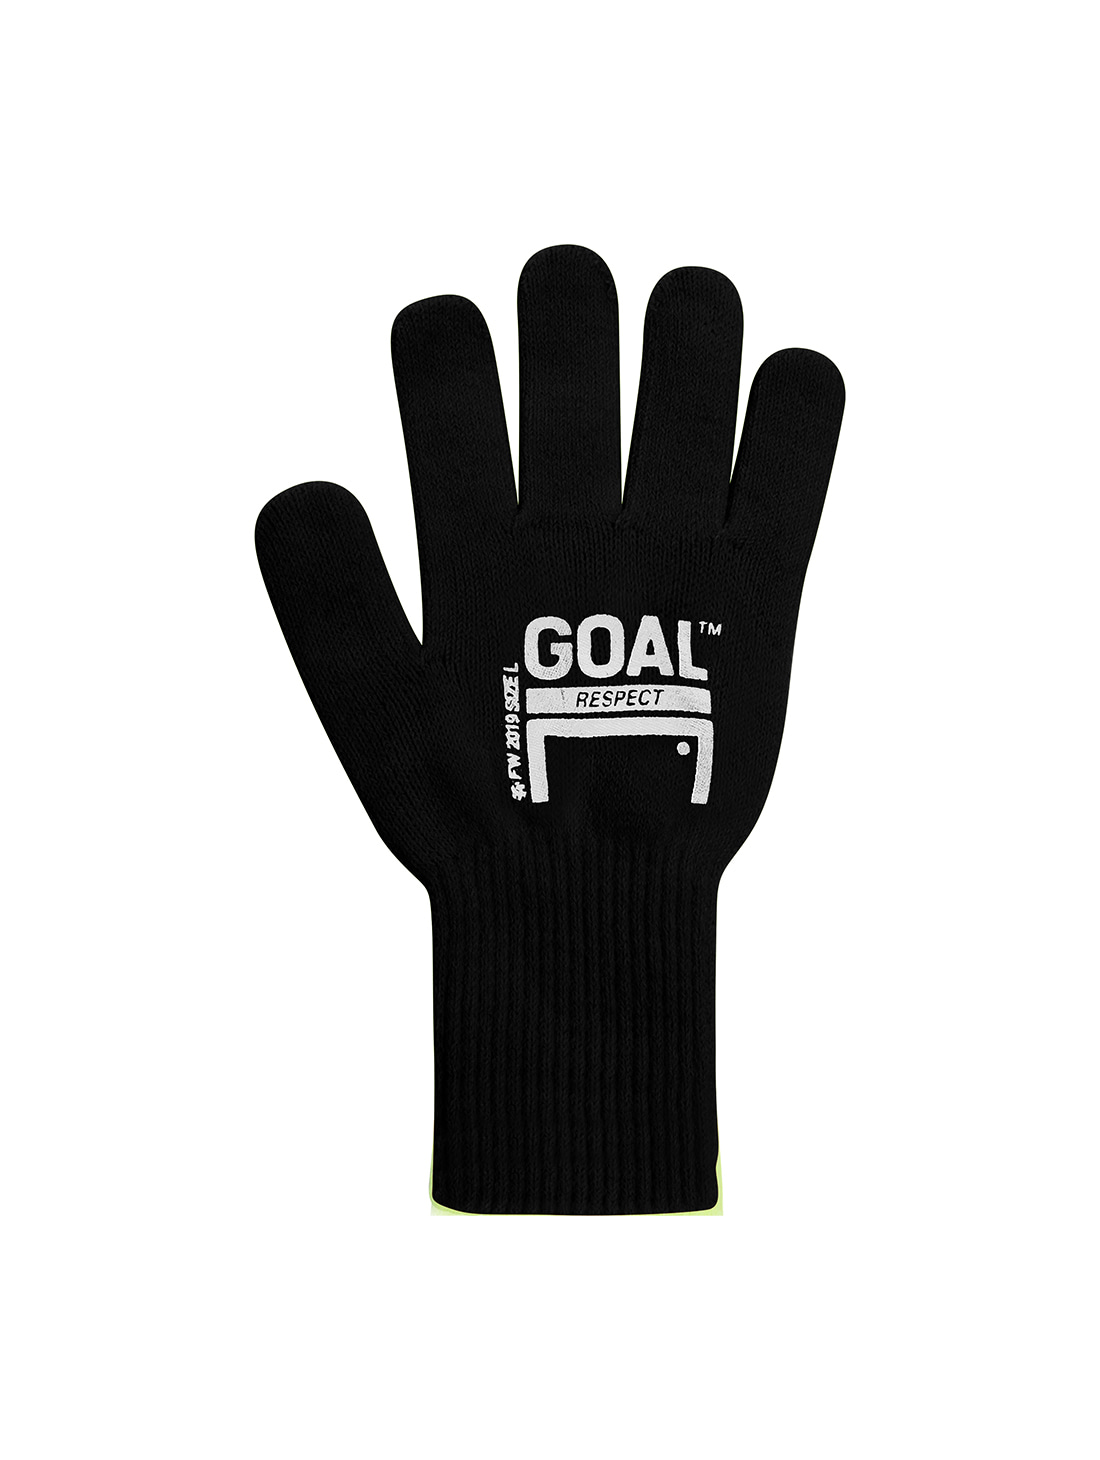 GOALSTUDIO (Sold Out) GOAL GLOVE - BLACK